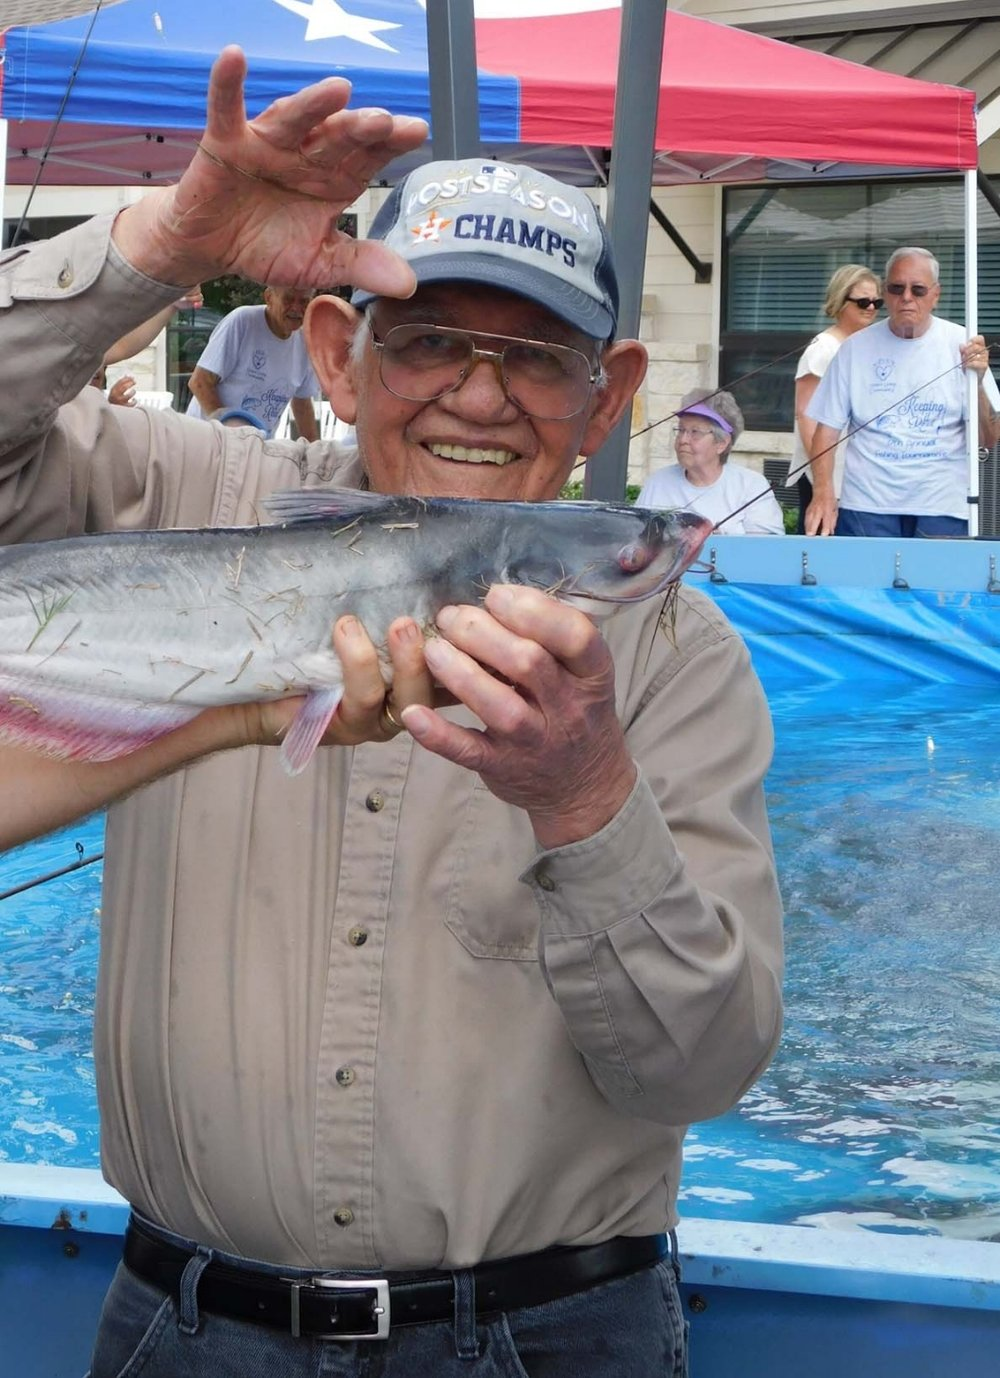 Residents at SPJST enjoy fishing each year at their annual fishing tournament. Residents reminisce on times of going to the lake to fish, while telling tall tales. Pi Architects believes in the importance of this event as it allows residents to preserve the special memories of years past and create new memories of catching the biggest fish of the day.